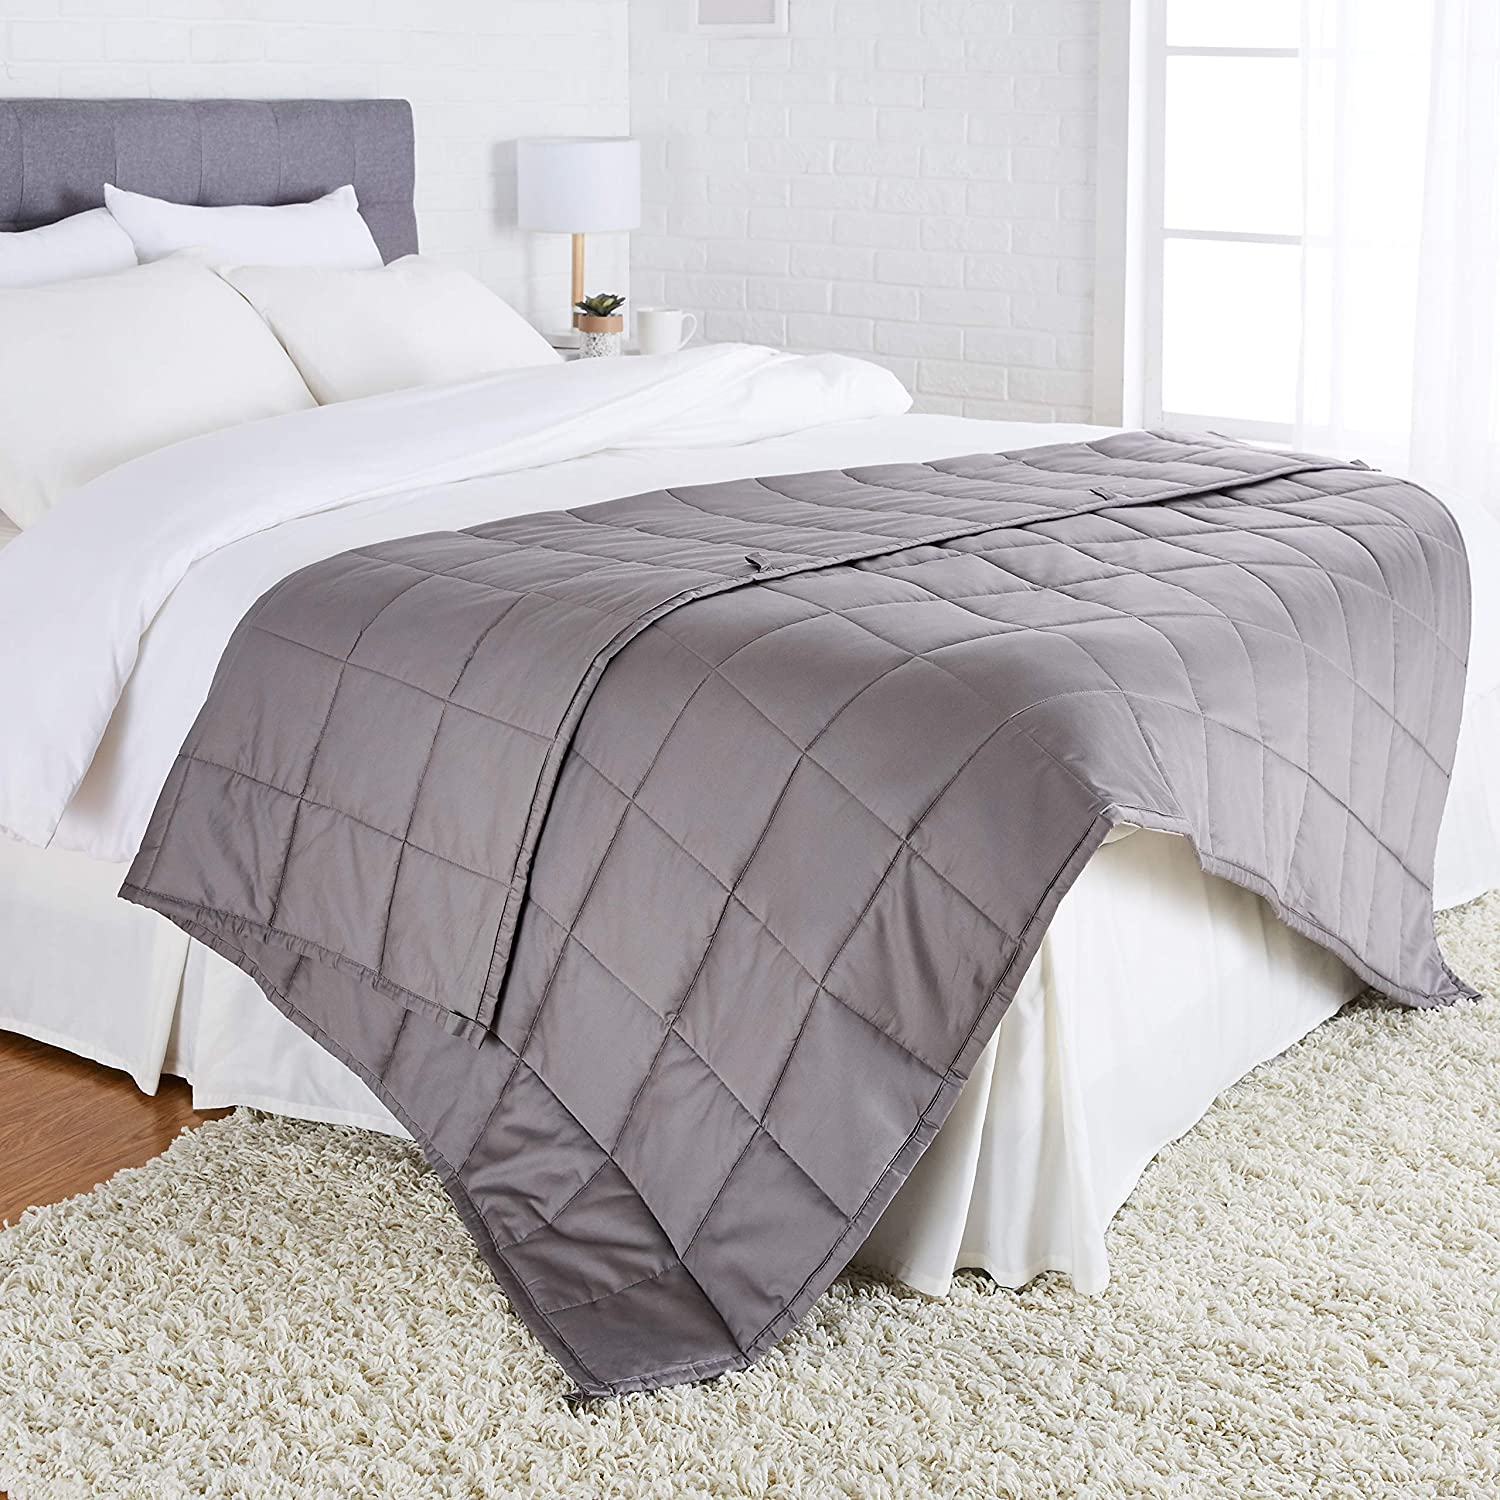 "Basics All-Season Cotton Weighted Blanket - 15-Pound, 60"" x 80"" (Full/Queen), Dark Grey: Home & Kitchen"